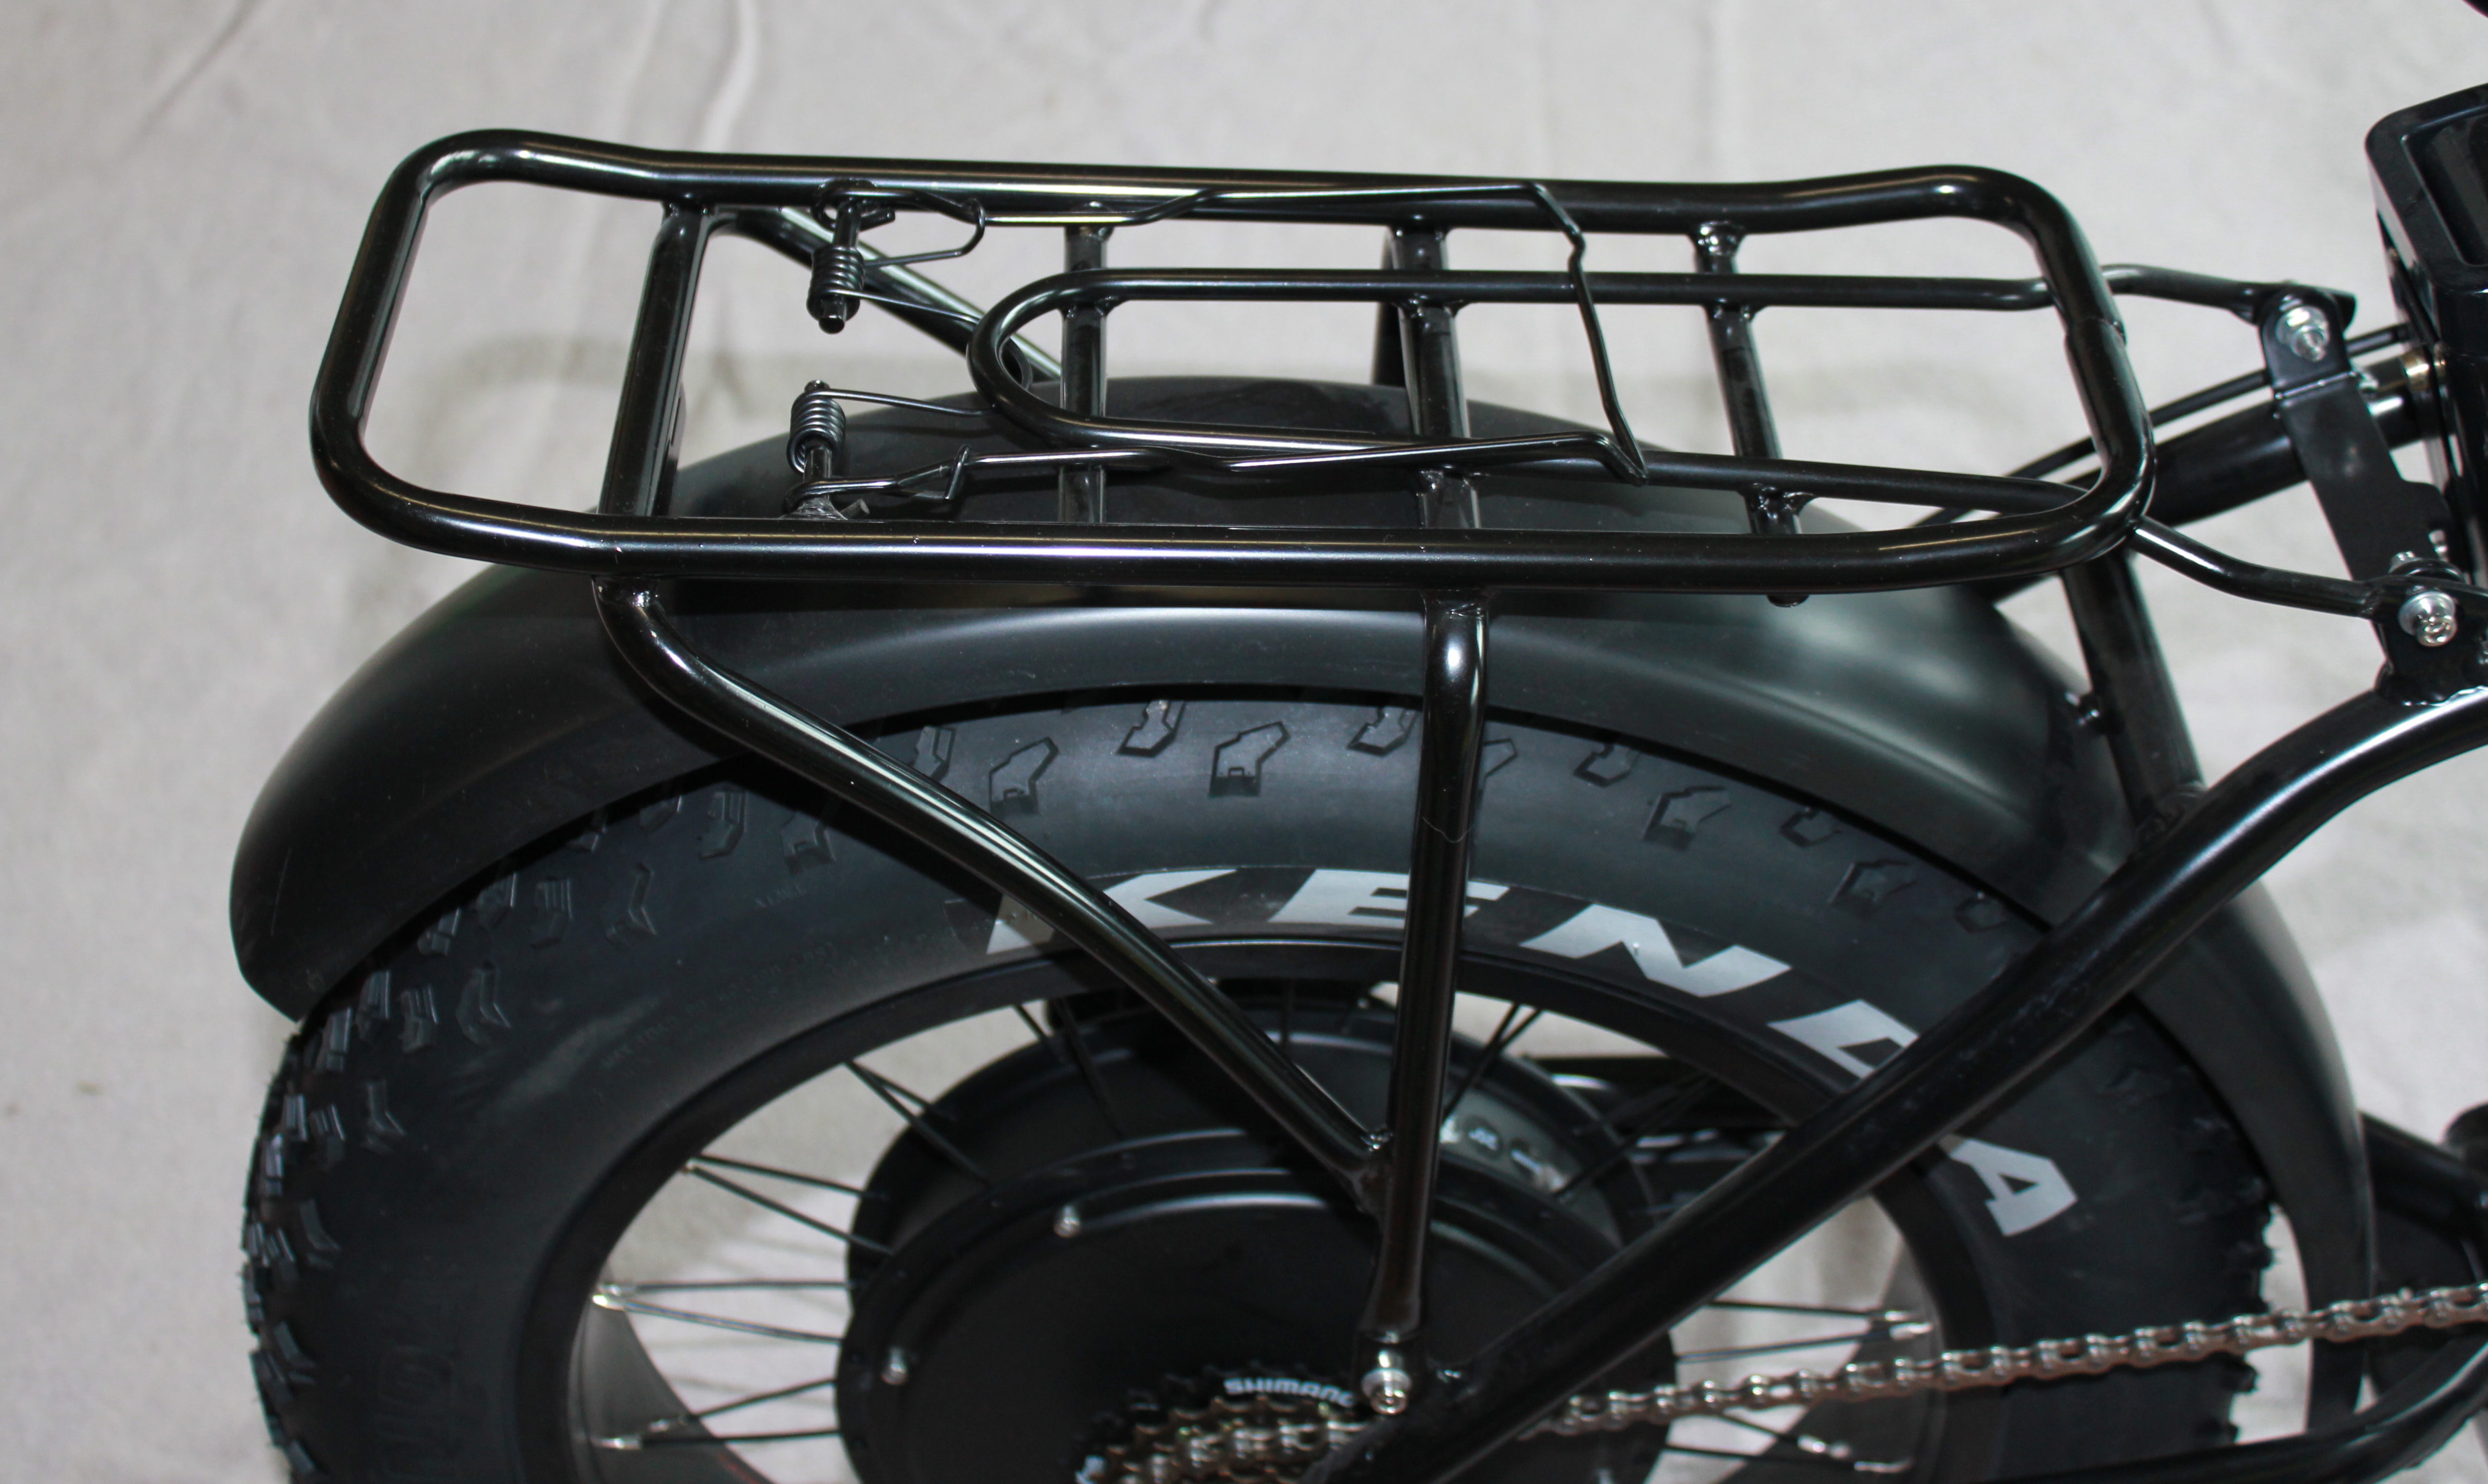 Trek and Traverse Rear Rack and Fender